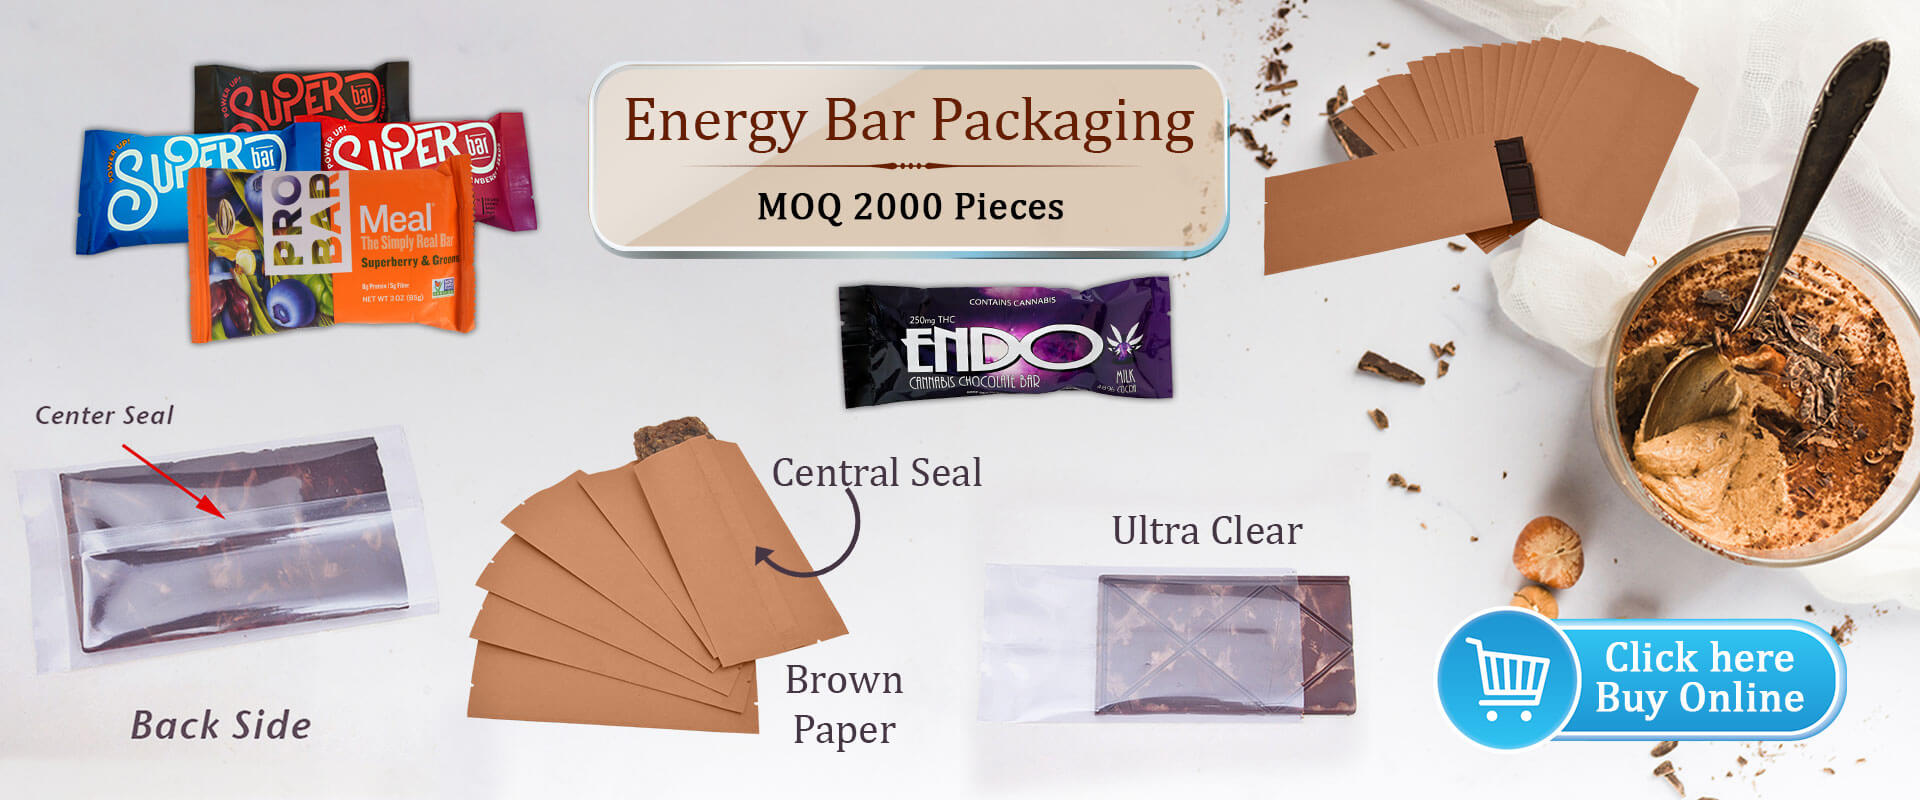 Energy Bar Packaging PouchMakers